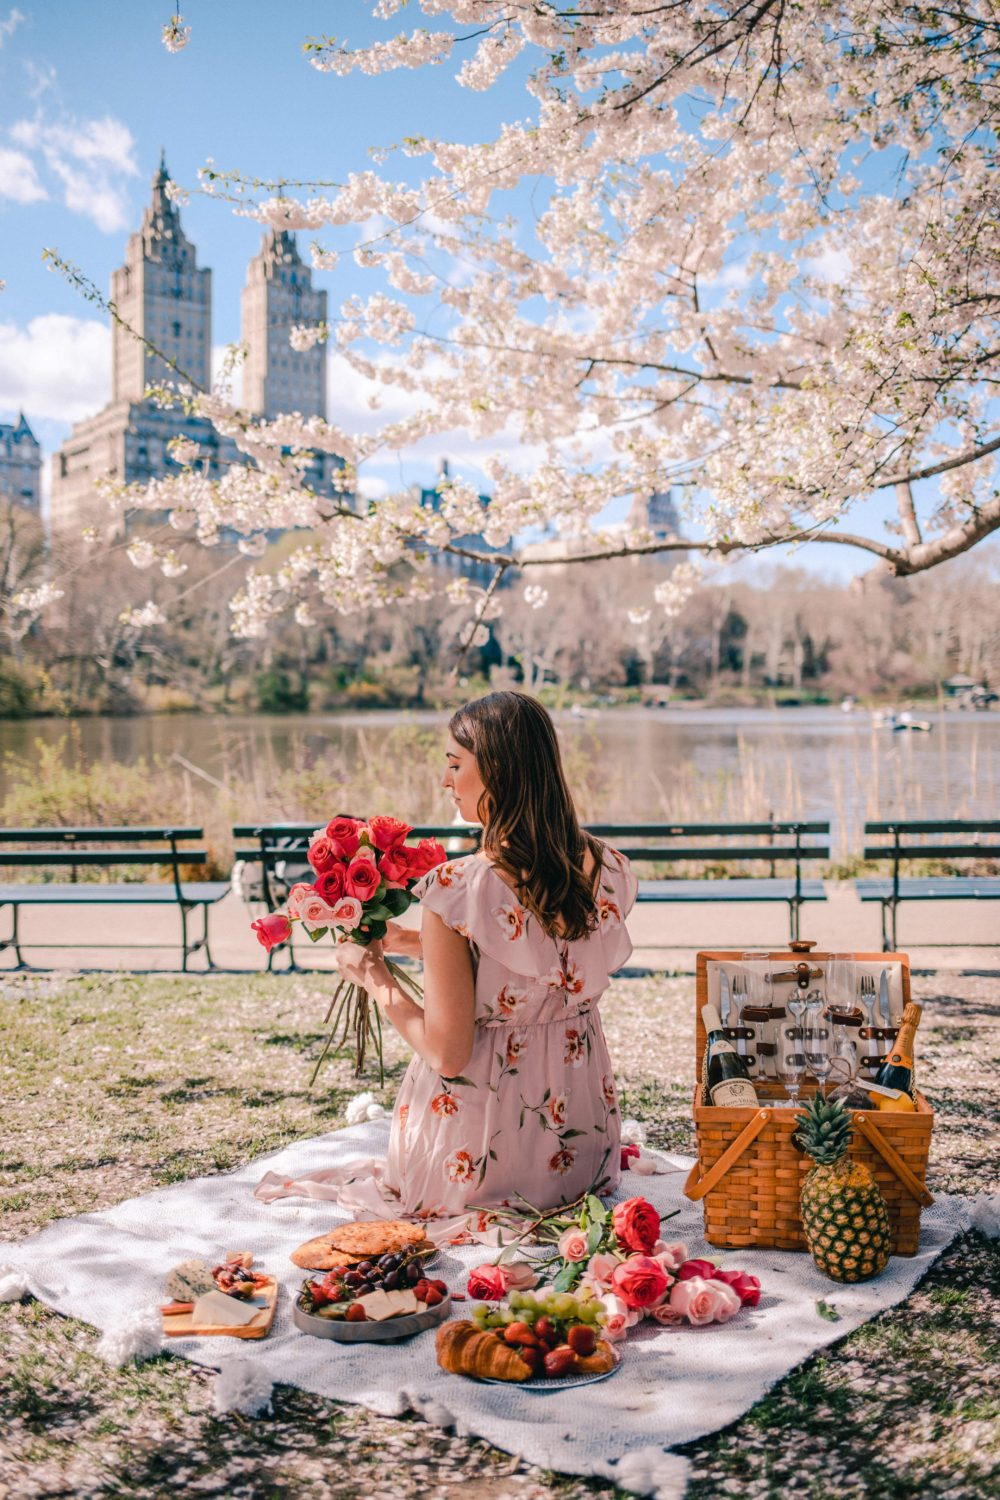 6 Charming Things to do in NYC During Spring: Picnic in Central Park